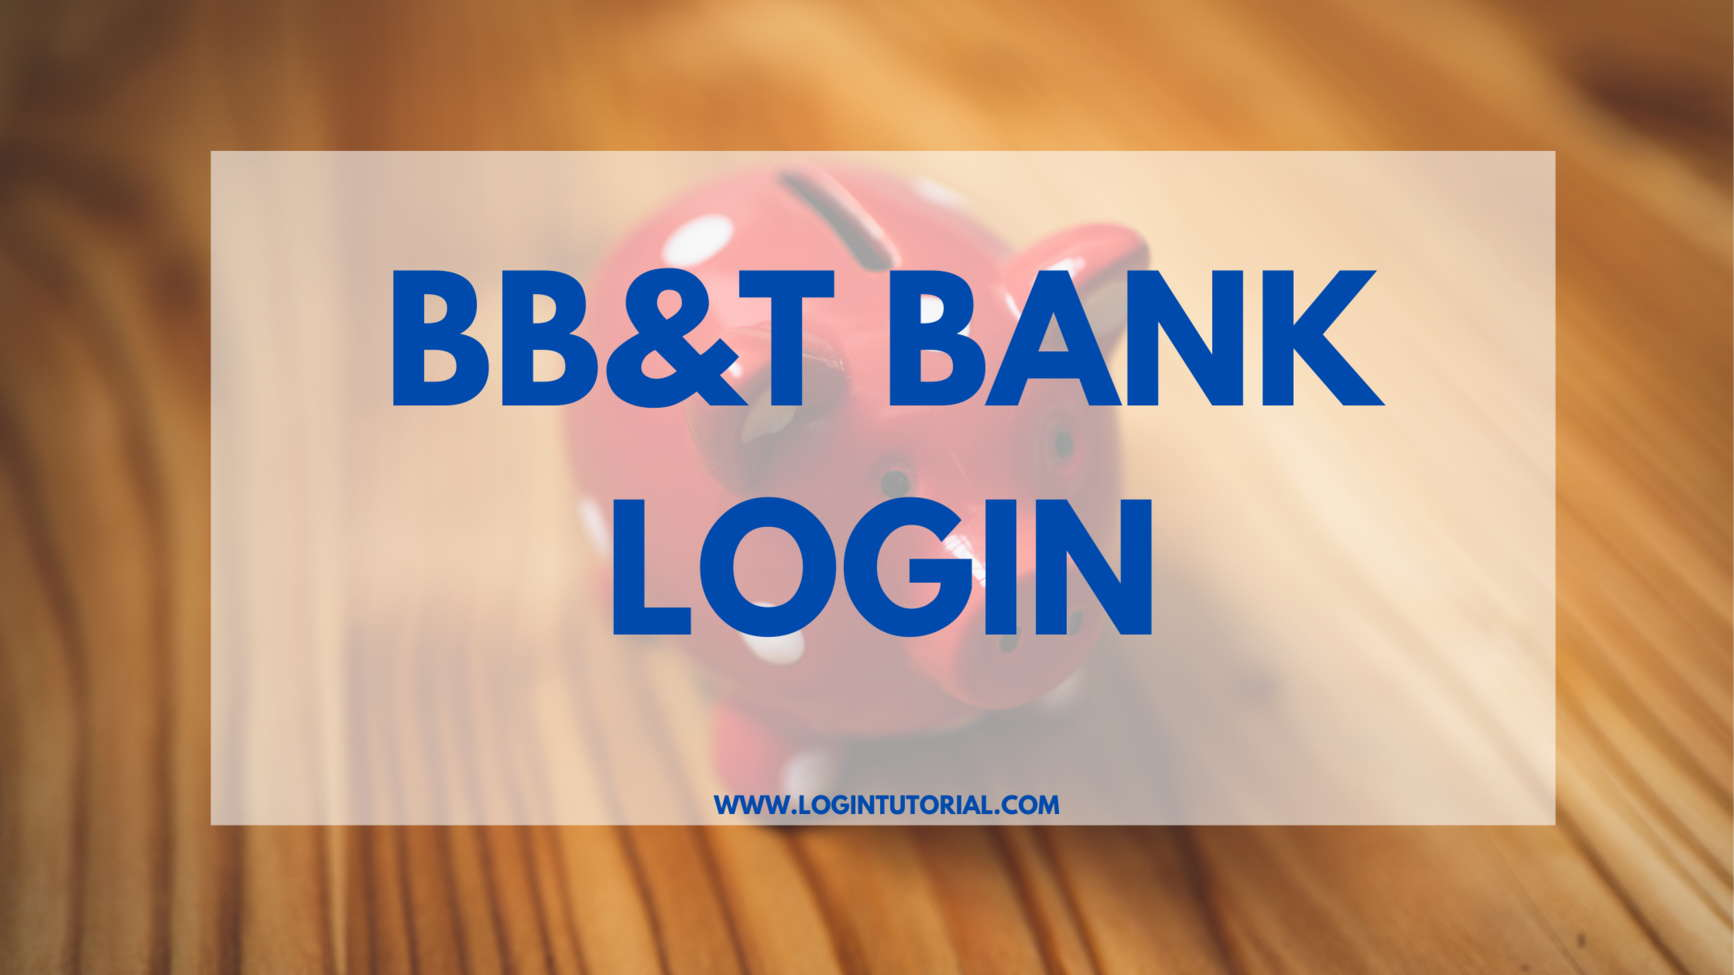 BB&T Login And Overview